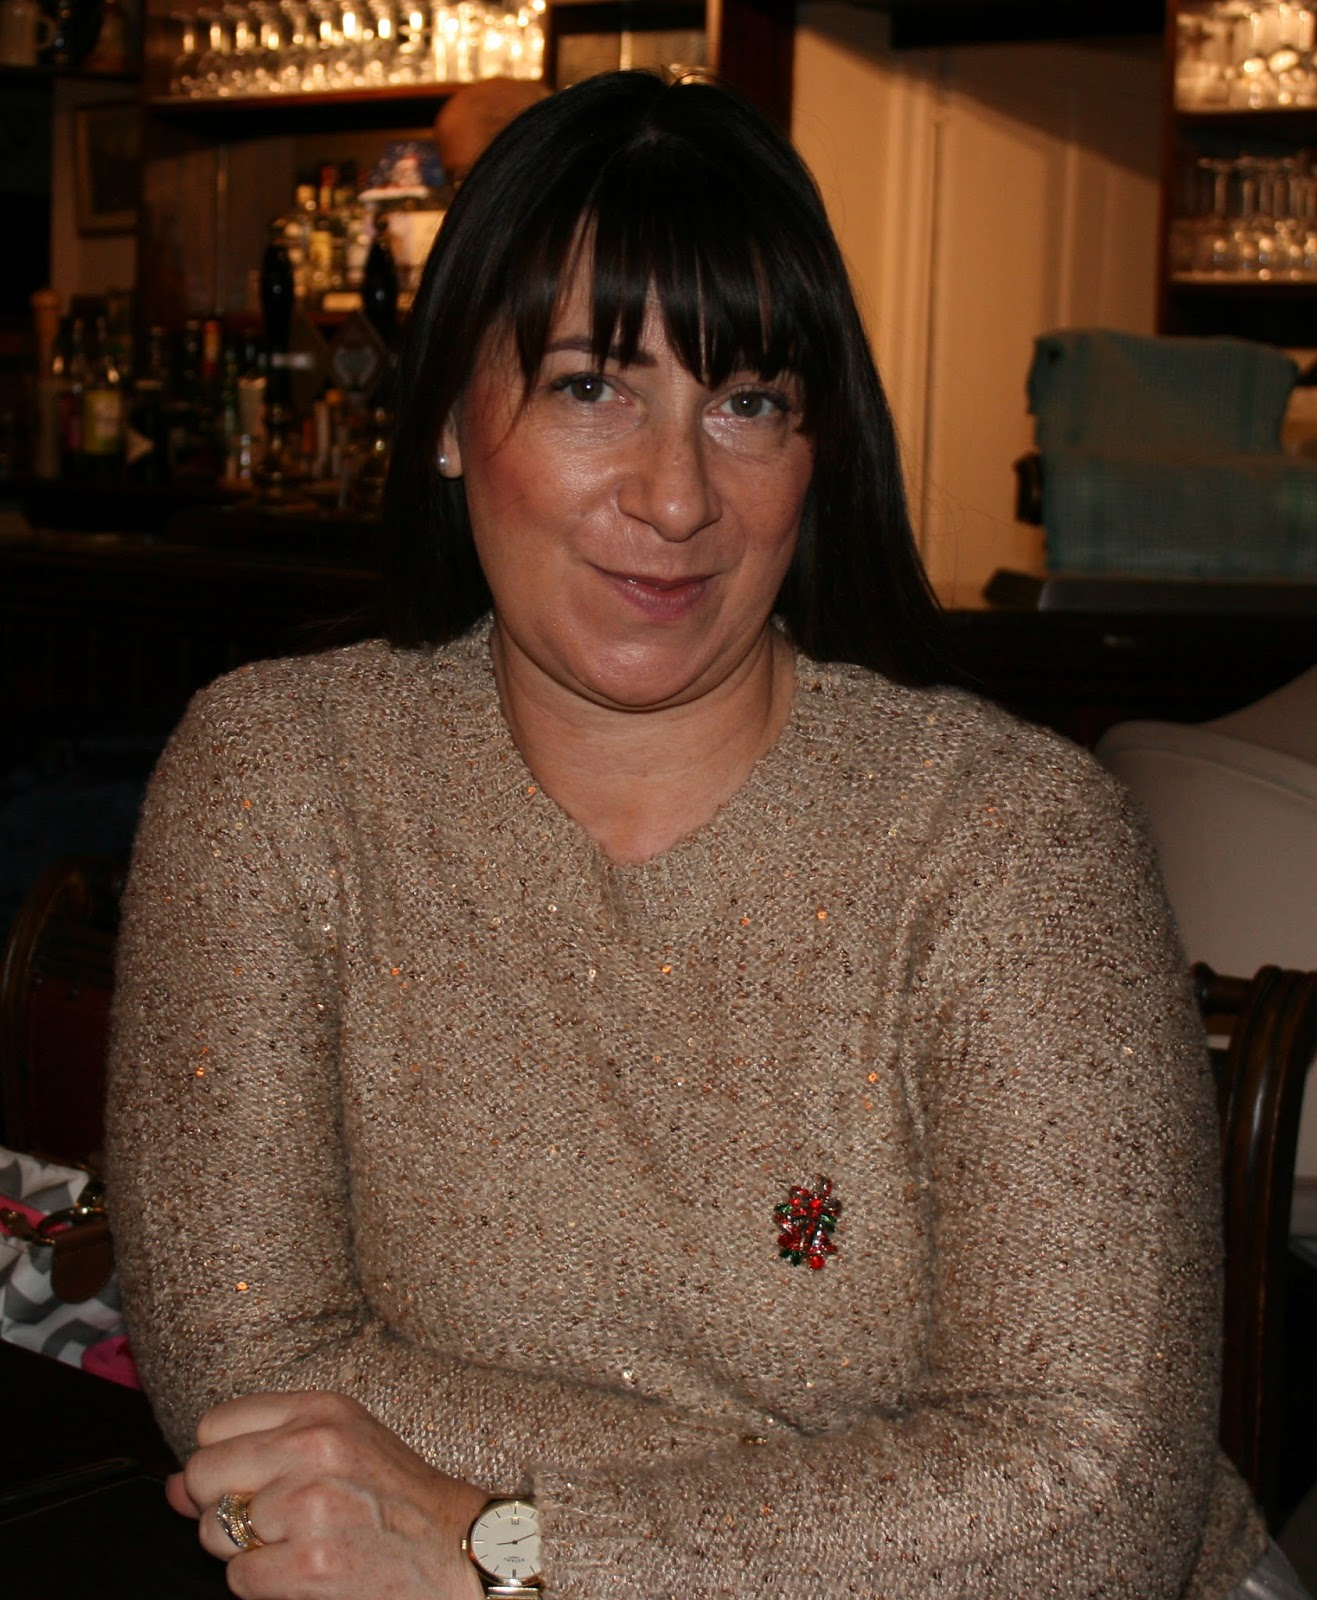 Image showing over 50s blogger Jacqui Berry in gold sequinned jumper for Christmas